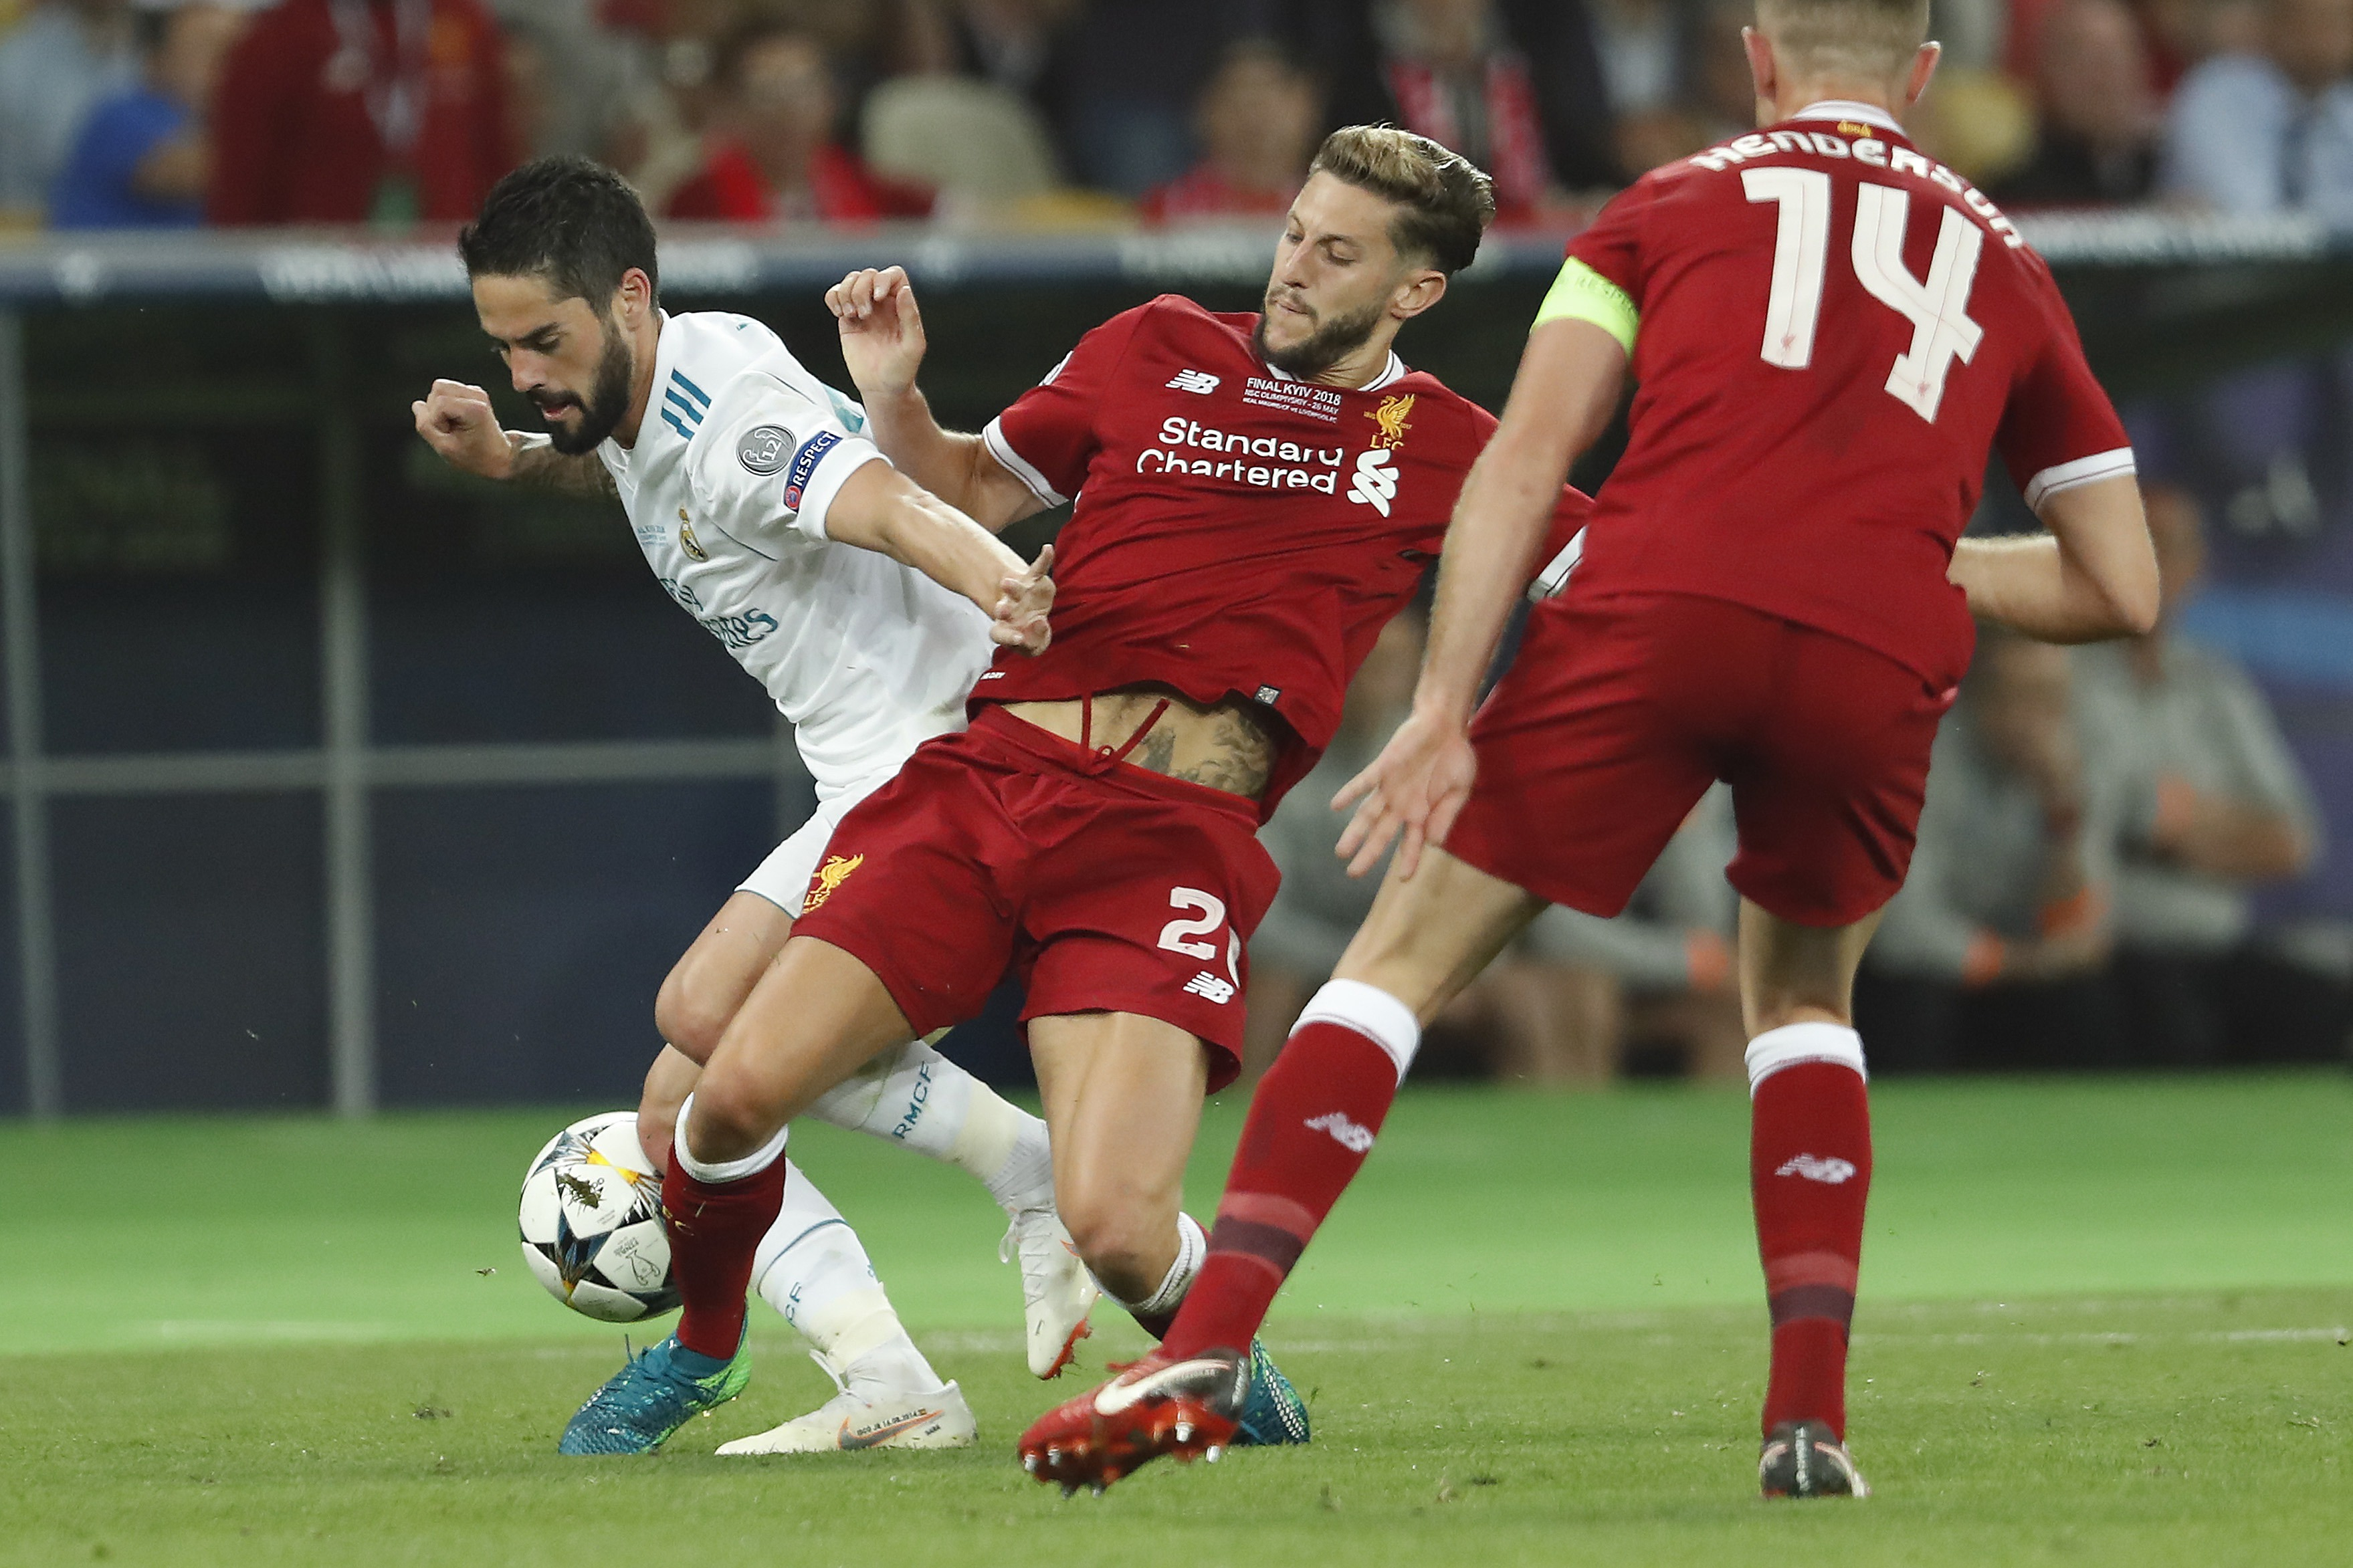 Lack of midfield options harming Reds